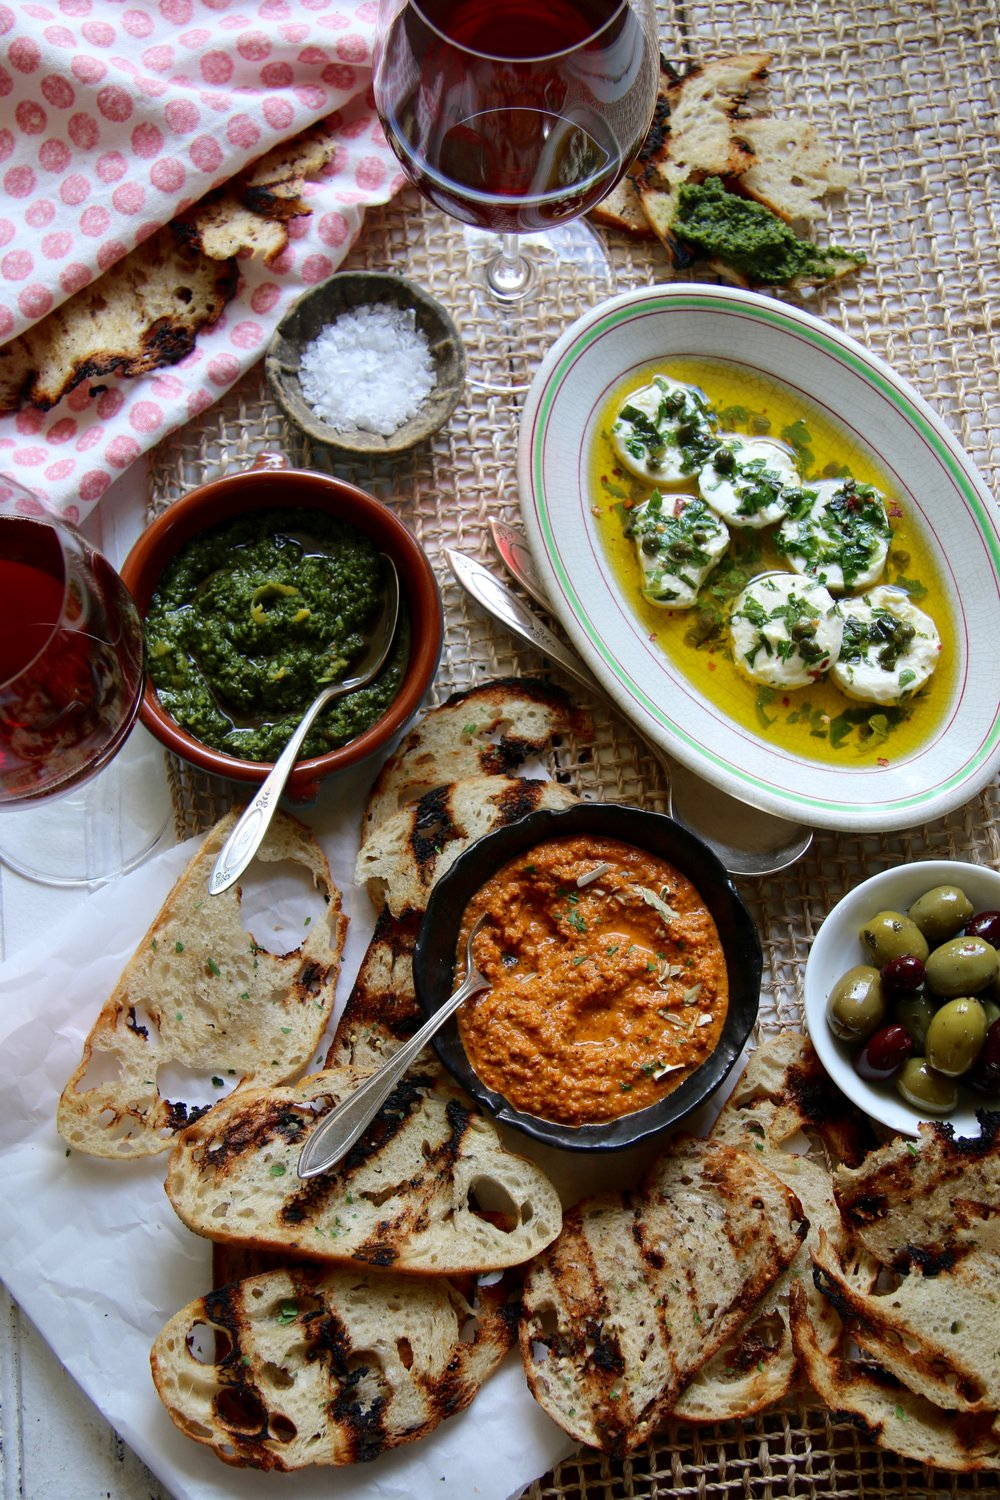 Psst...heres the rest of the recipes - for the grilled breadoh, and the charred red pepper dipping sauce aaaaaand the chimichurri, tooHAPPY SUMMERTIME!!!